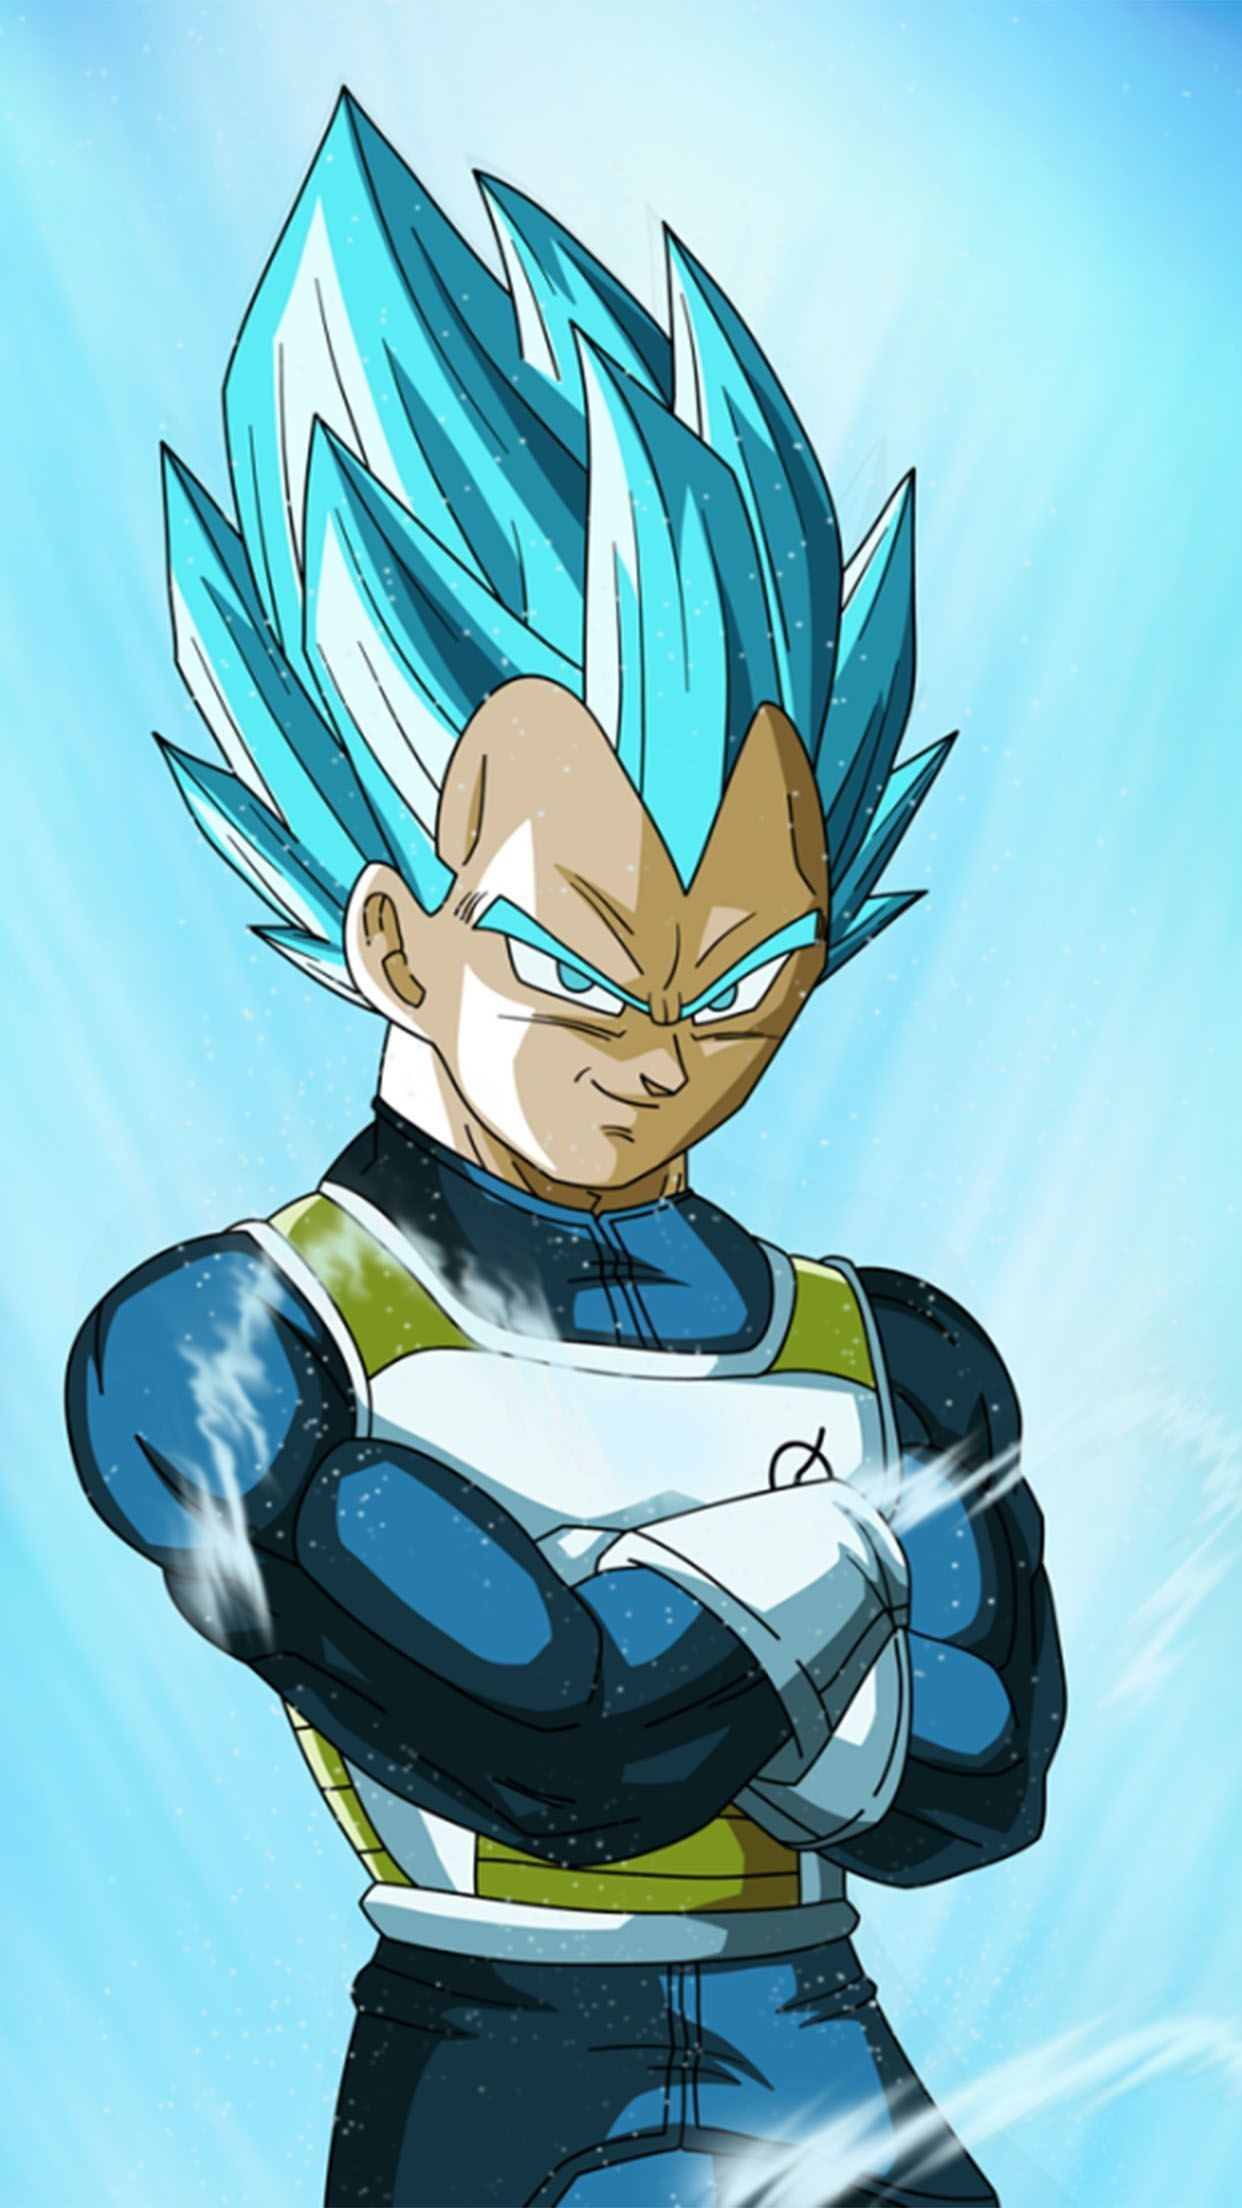 Vegeta Dragon Ball Super Wallpaper Iphone (With images